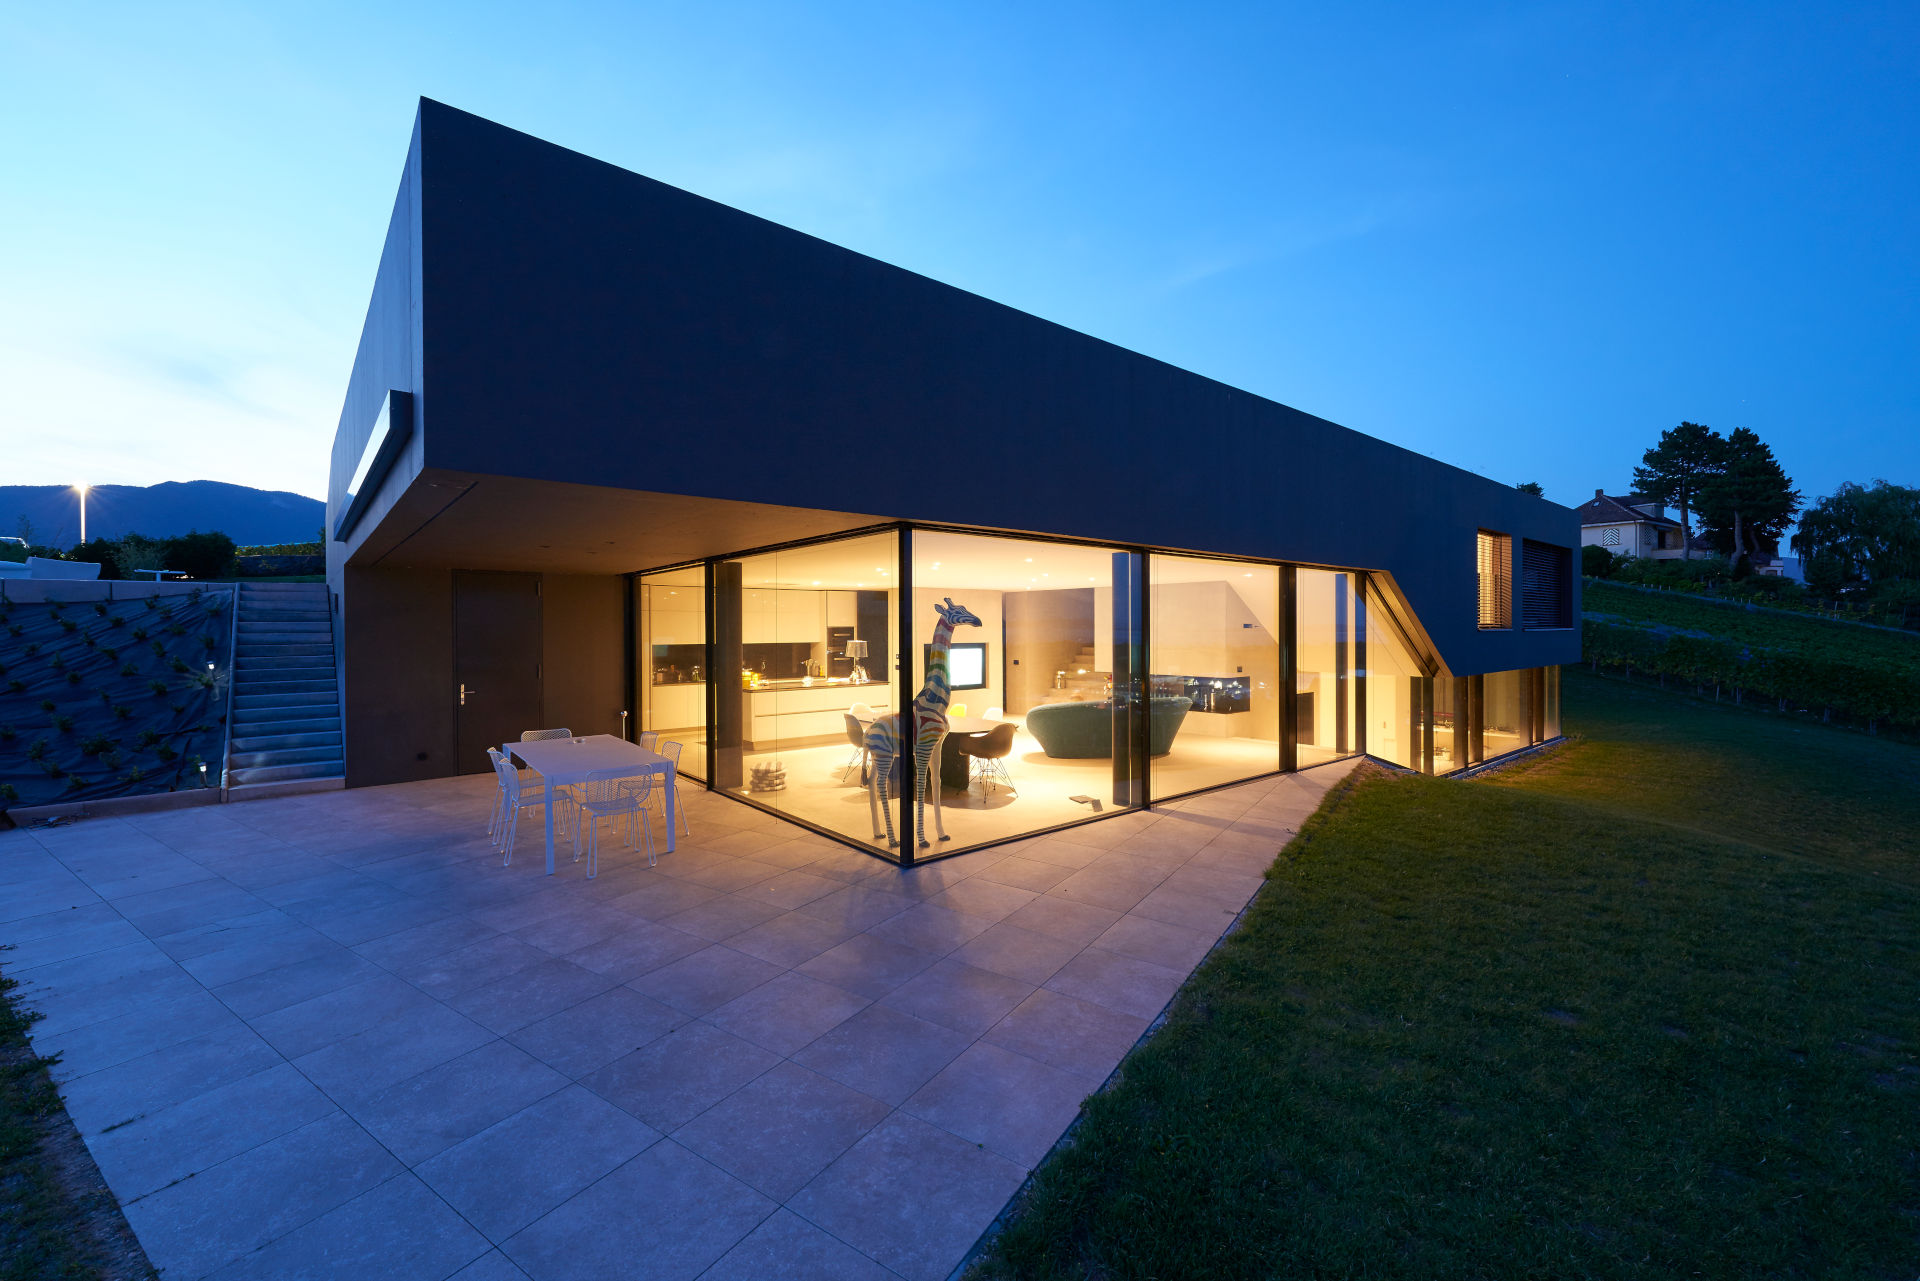 villa-cortaillod-sliding-walls-of-glass